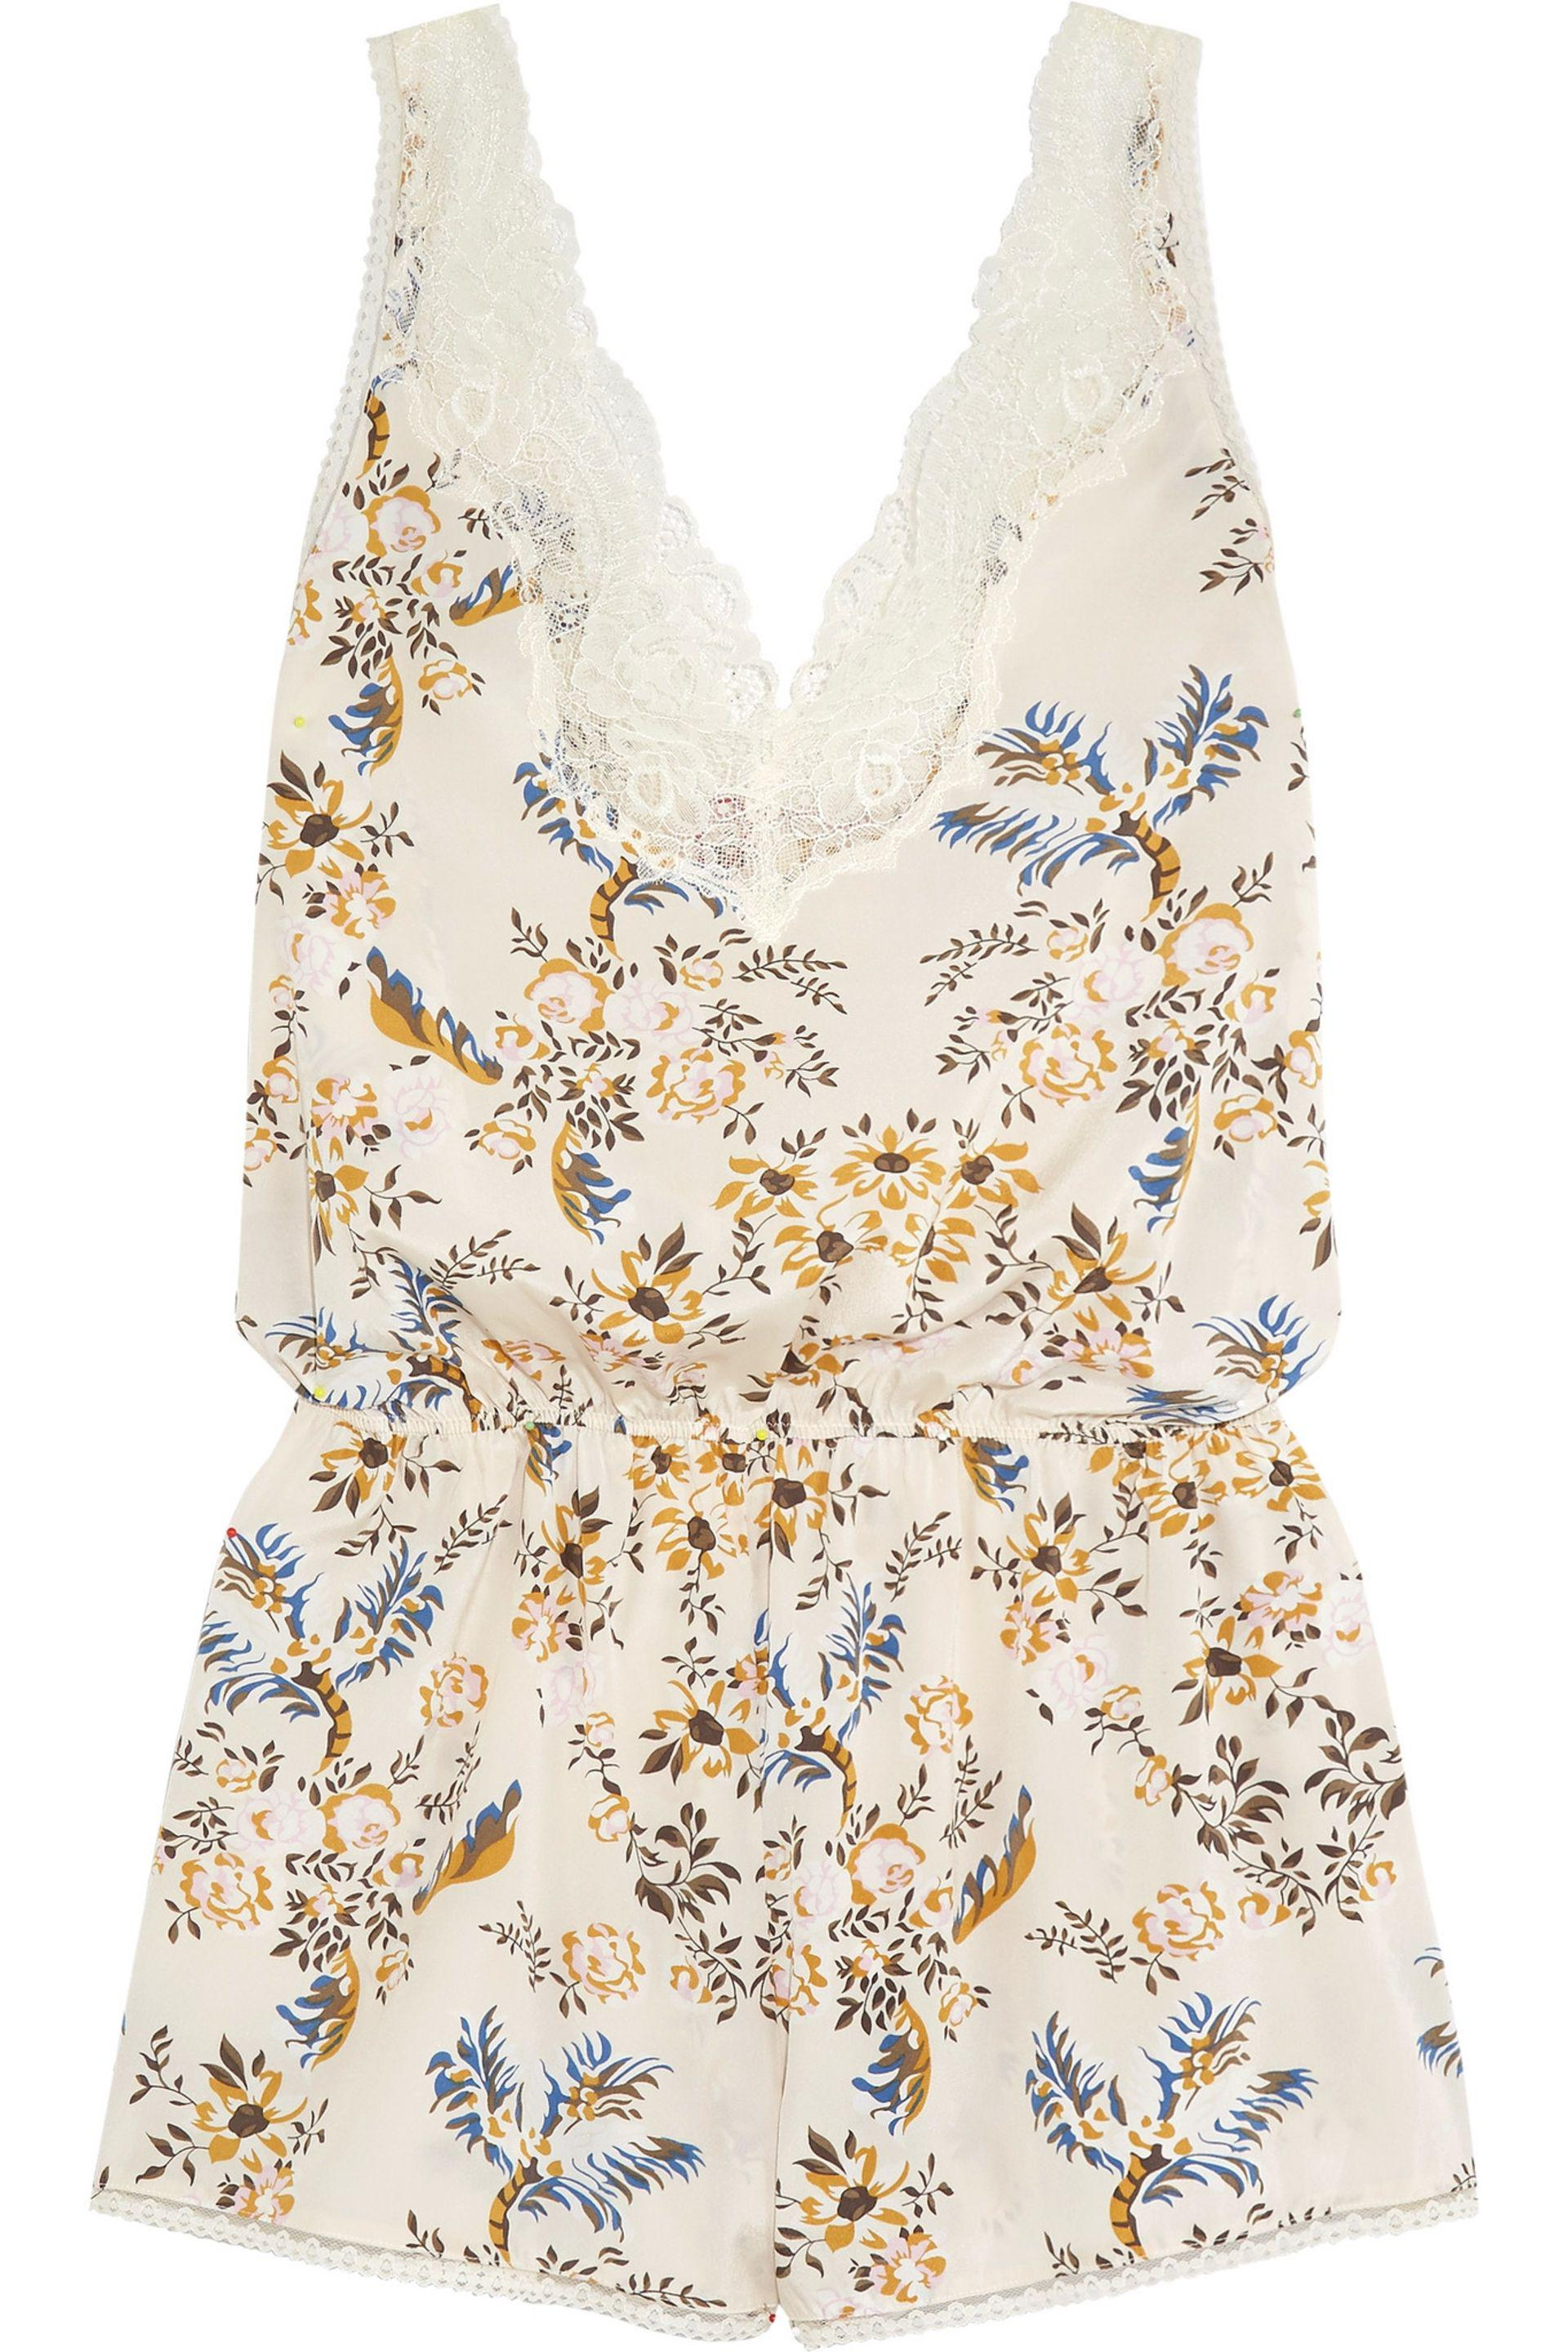 Lyst - Stella Mccartney Poppy Snoozing Lace-trimmed Floral-print ... 89eb0794e